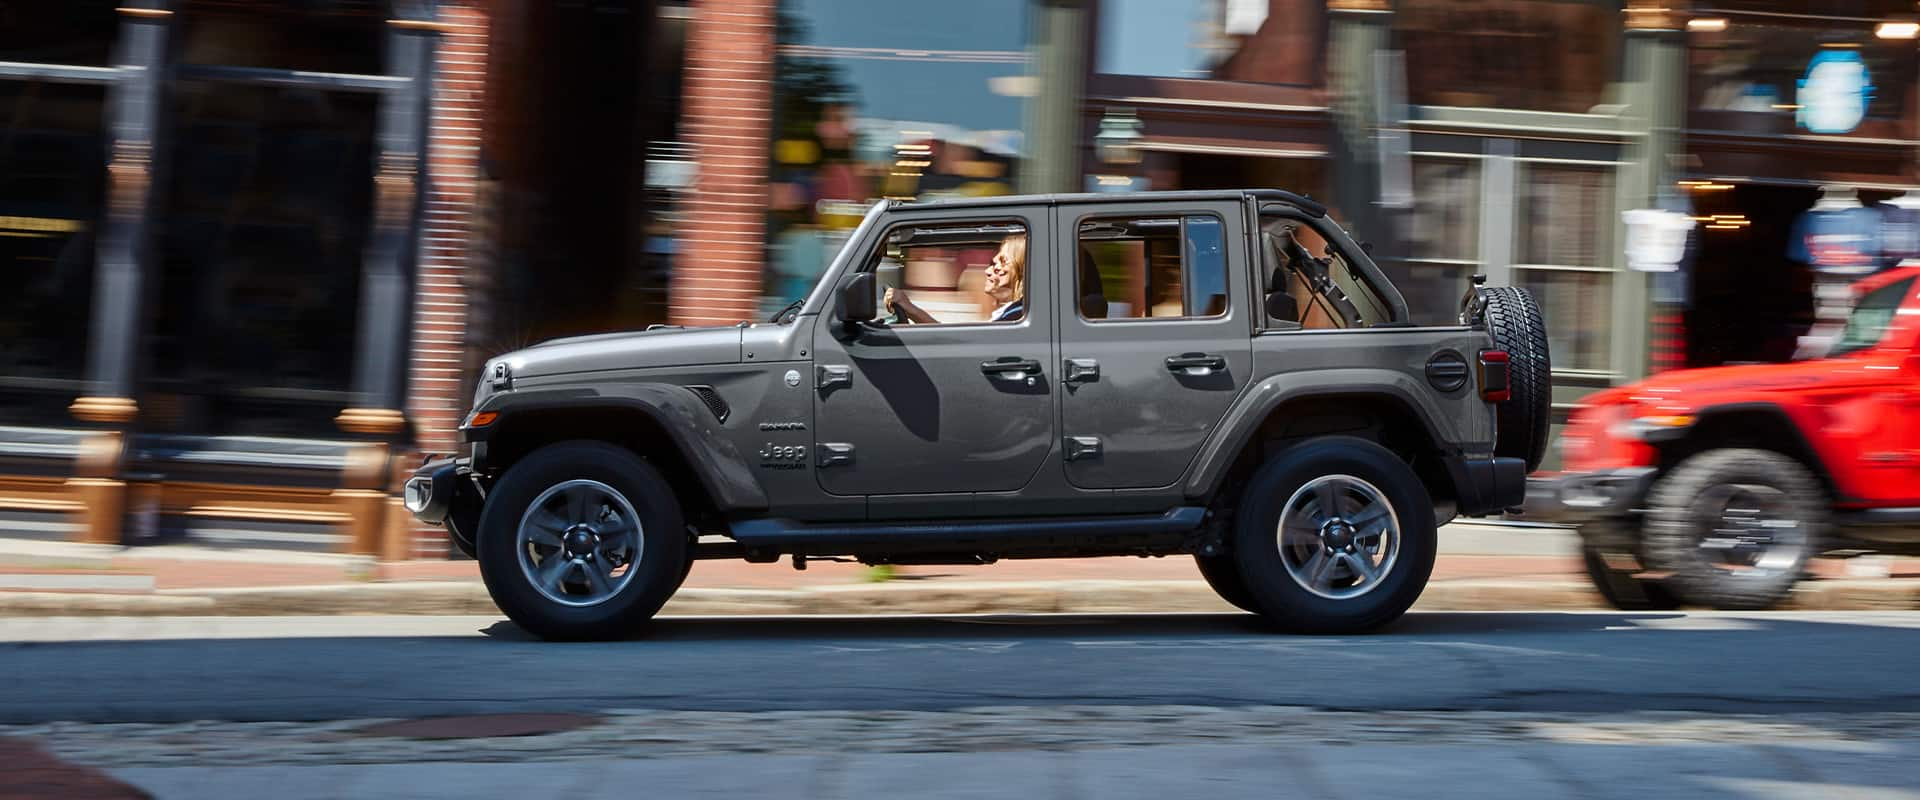 A 2021 Jeep Wrangler Sahara being driven on a busy city street.